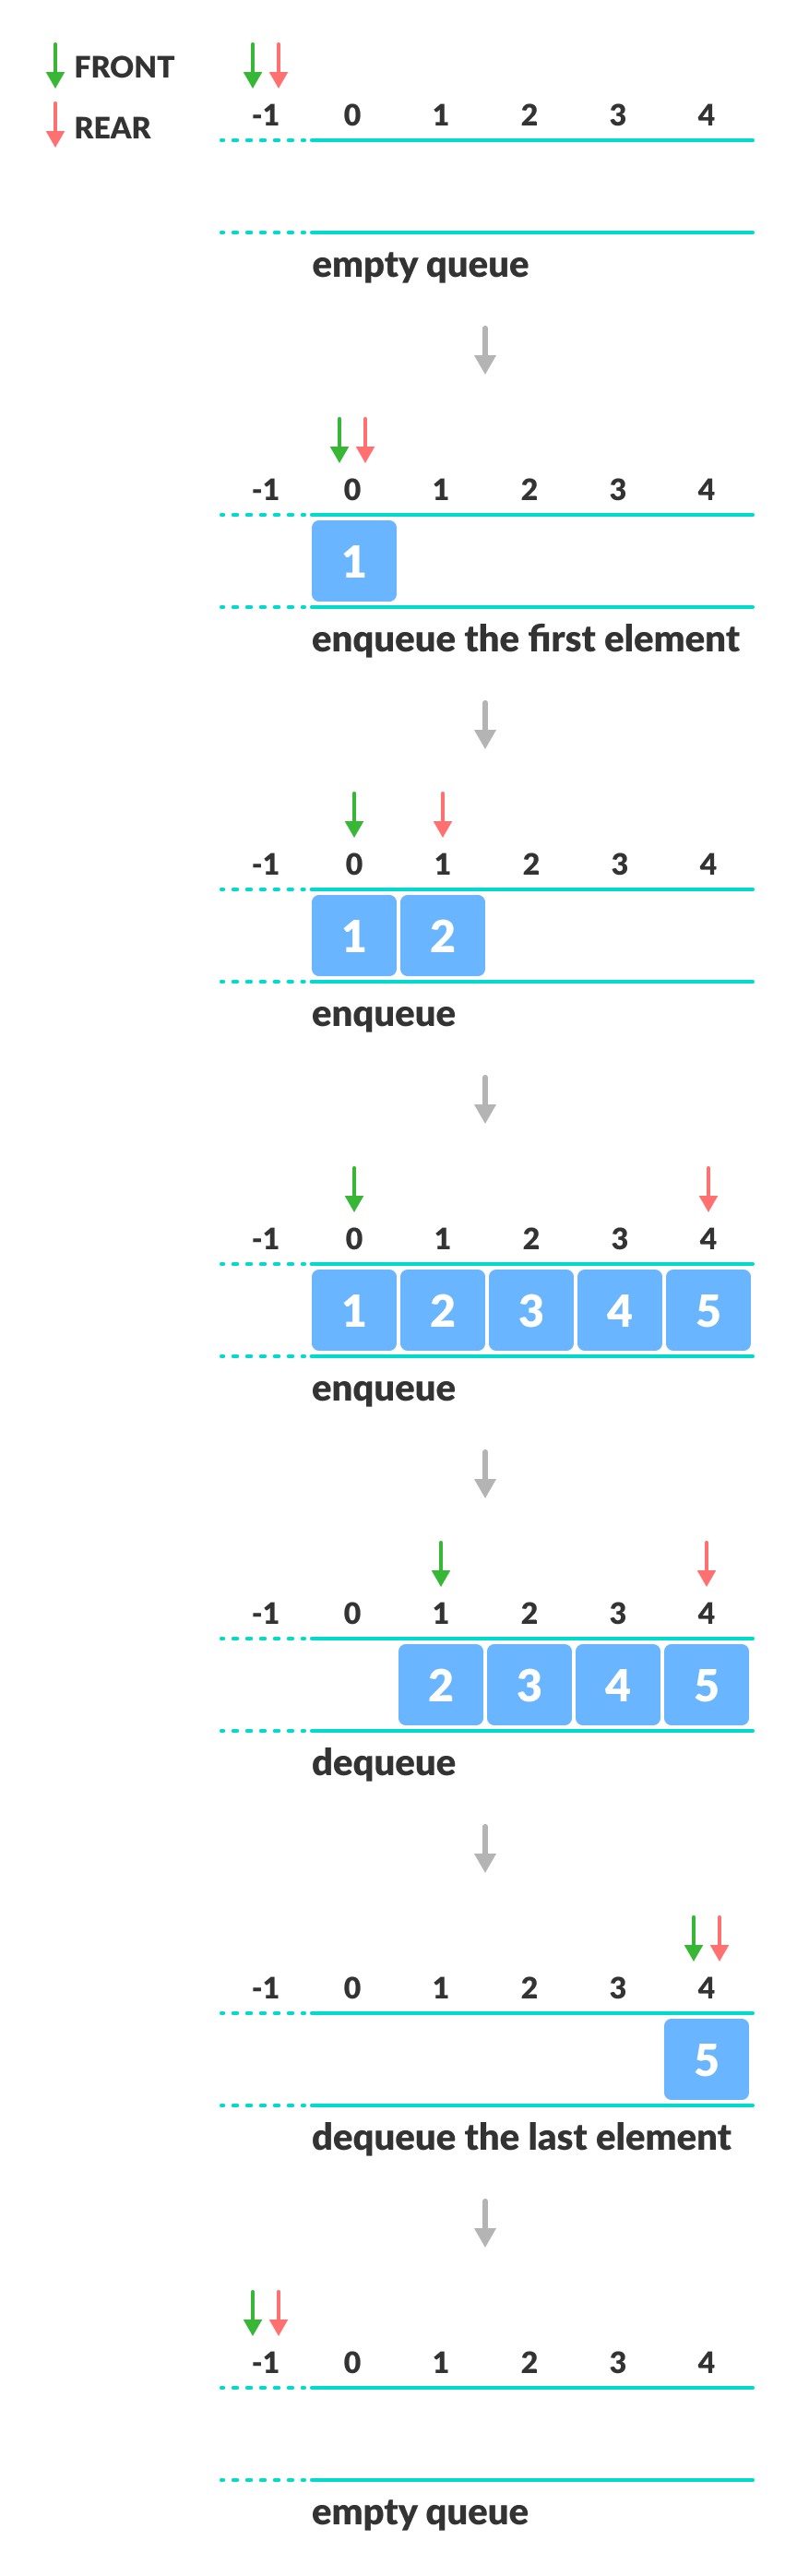 Demonstrating how front and rear indexes are modified during enqueue and dequeue operations